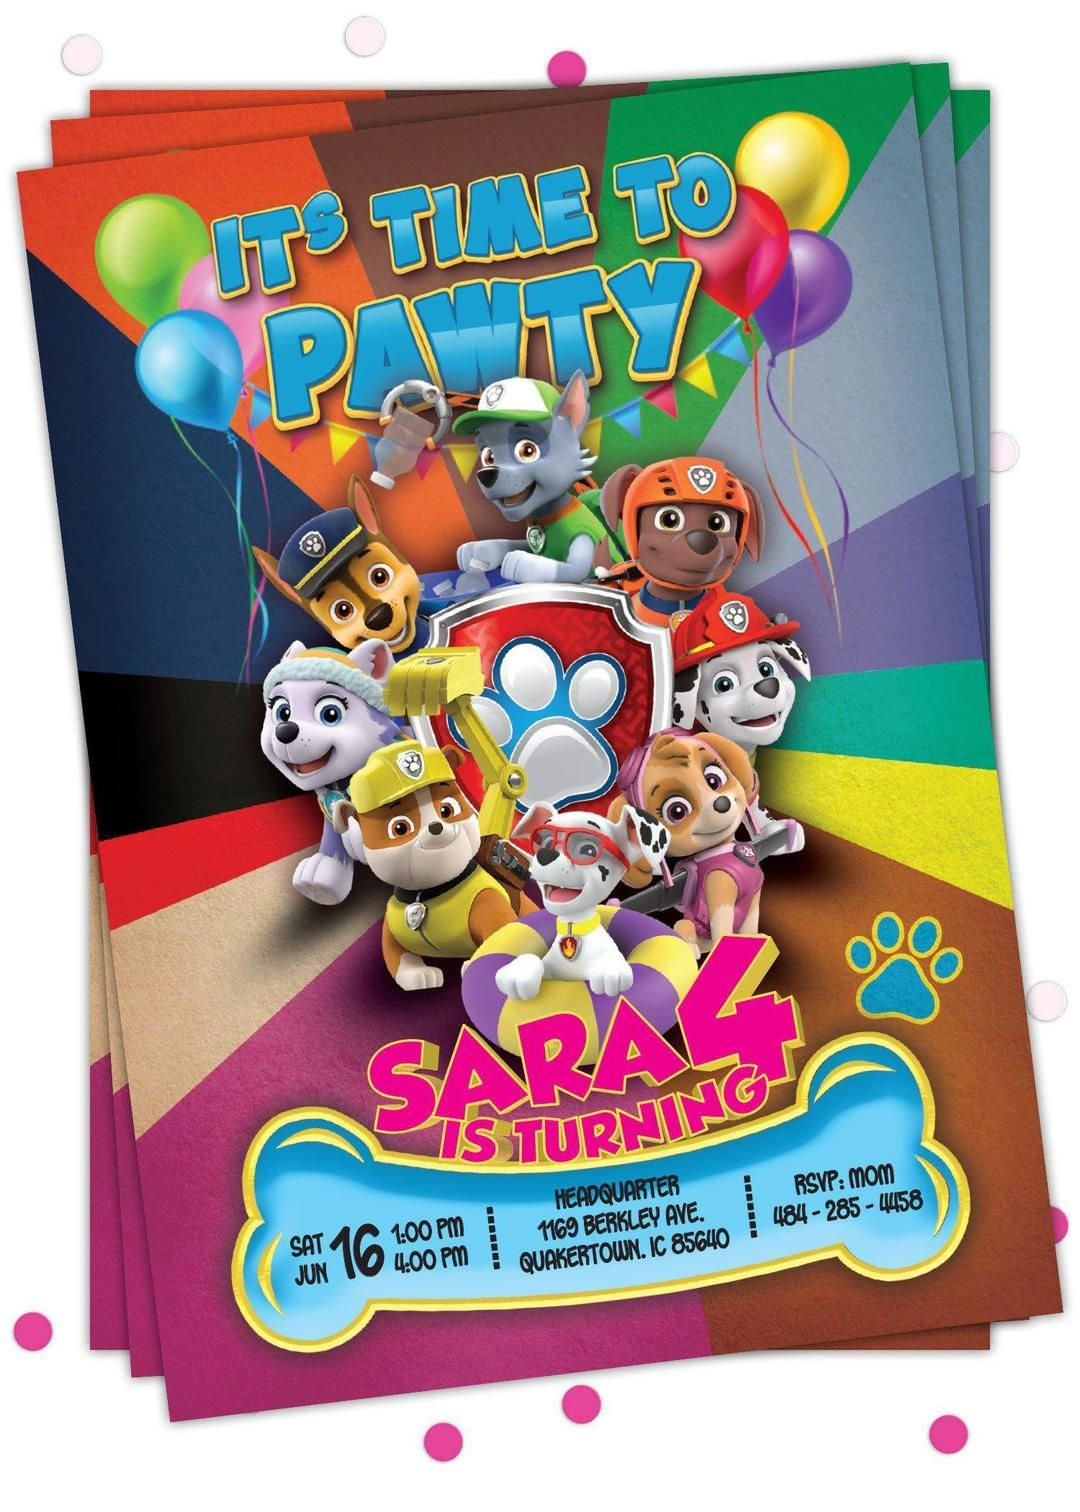 Paw Patrol Invitations - Paw patrol invitations, Paw patrol birthday invitations, Pig birthday invitations, Peppa pig birthday invitations, Paw patrol birthday party, Emoji birthday invitations - Invite loved ones with printable Paw Patrol invitations that you can personalize down to every detail!  Its time for a PAWty birthday!